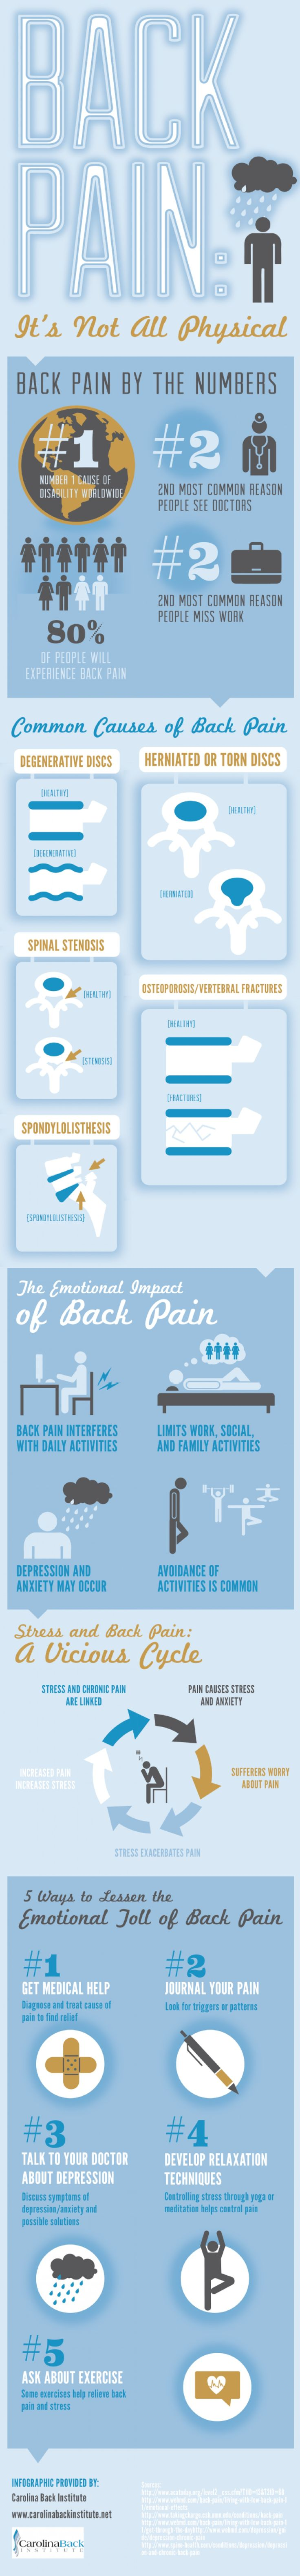 Back Pain: It's Not All Physical  Infographic